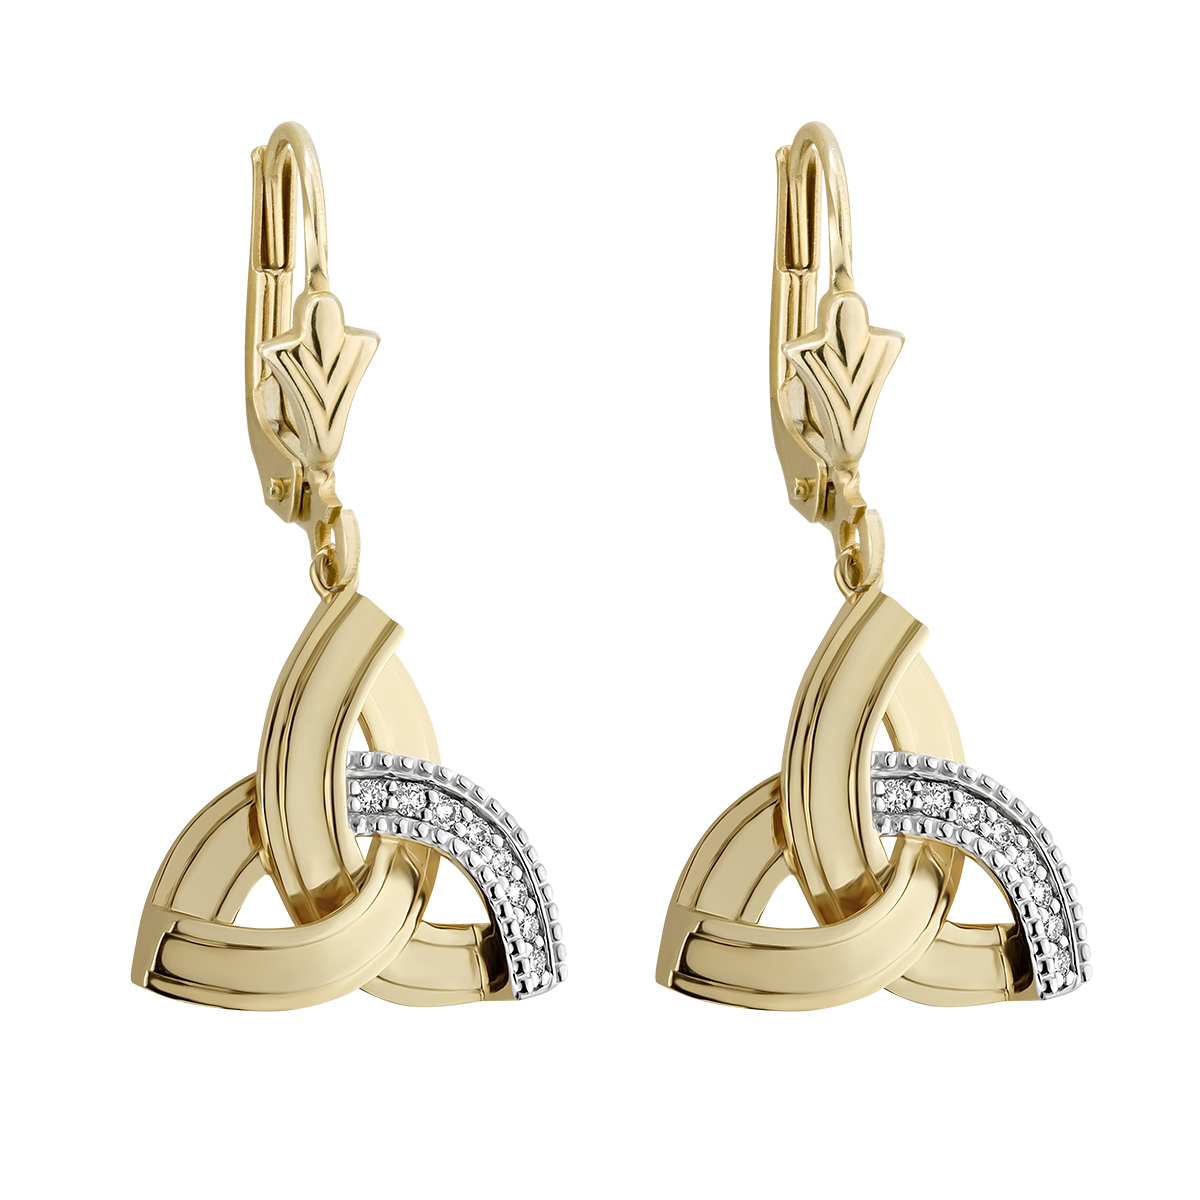 Irish Earrings | 14k Gold Diamond Drop Celtic Trinity Knot Earrings